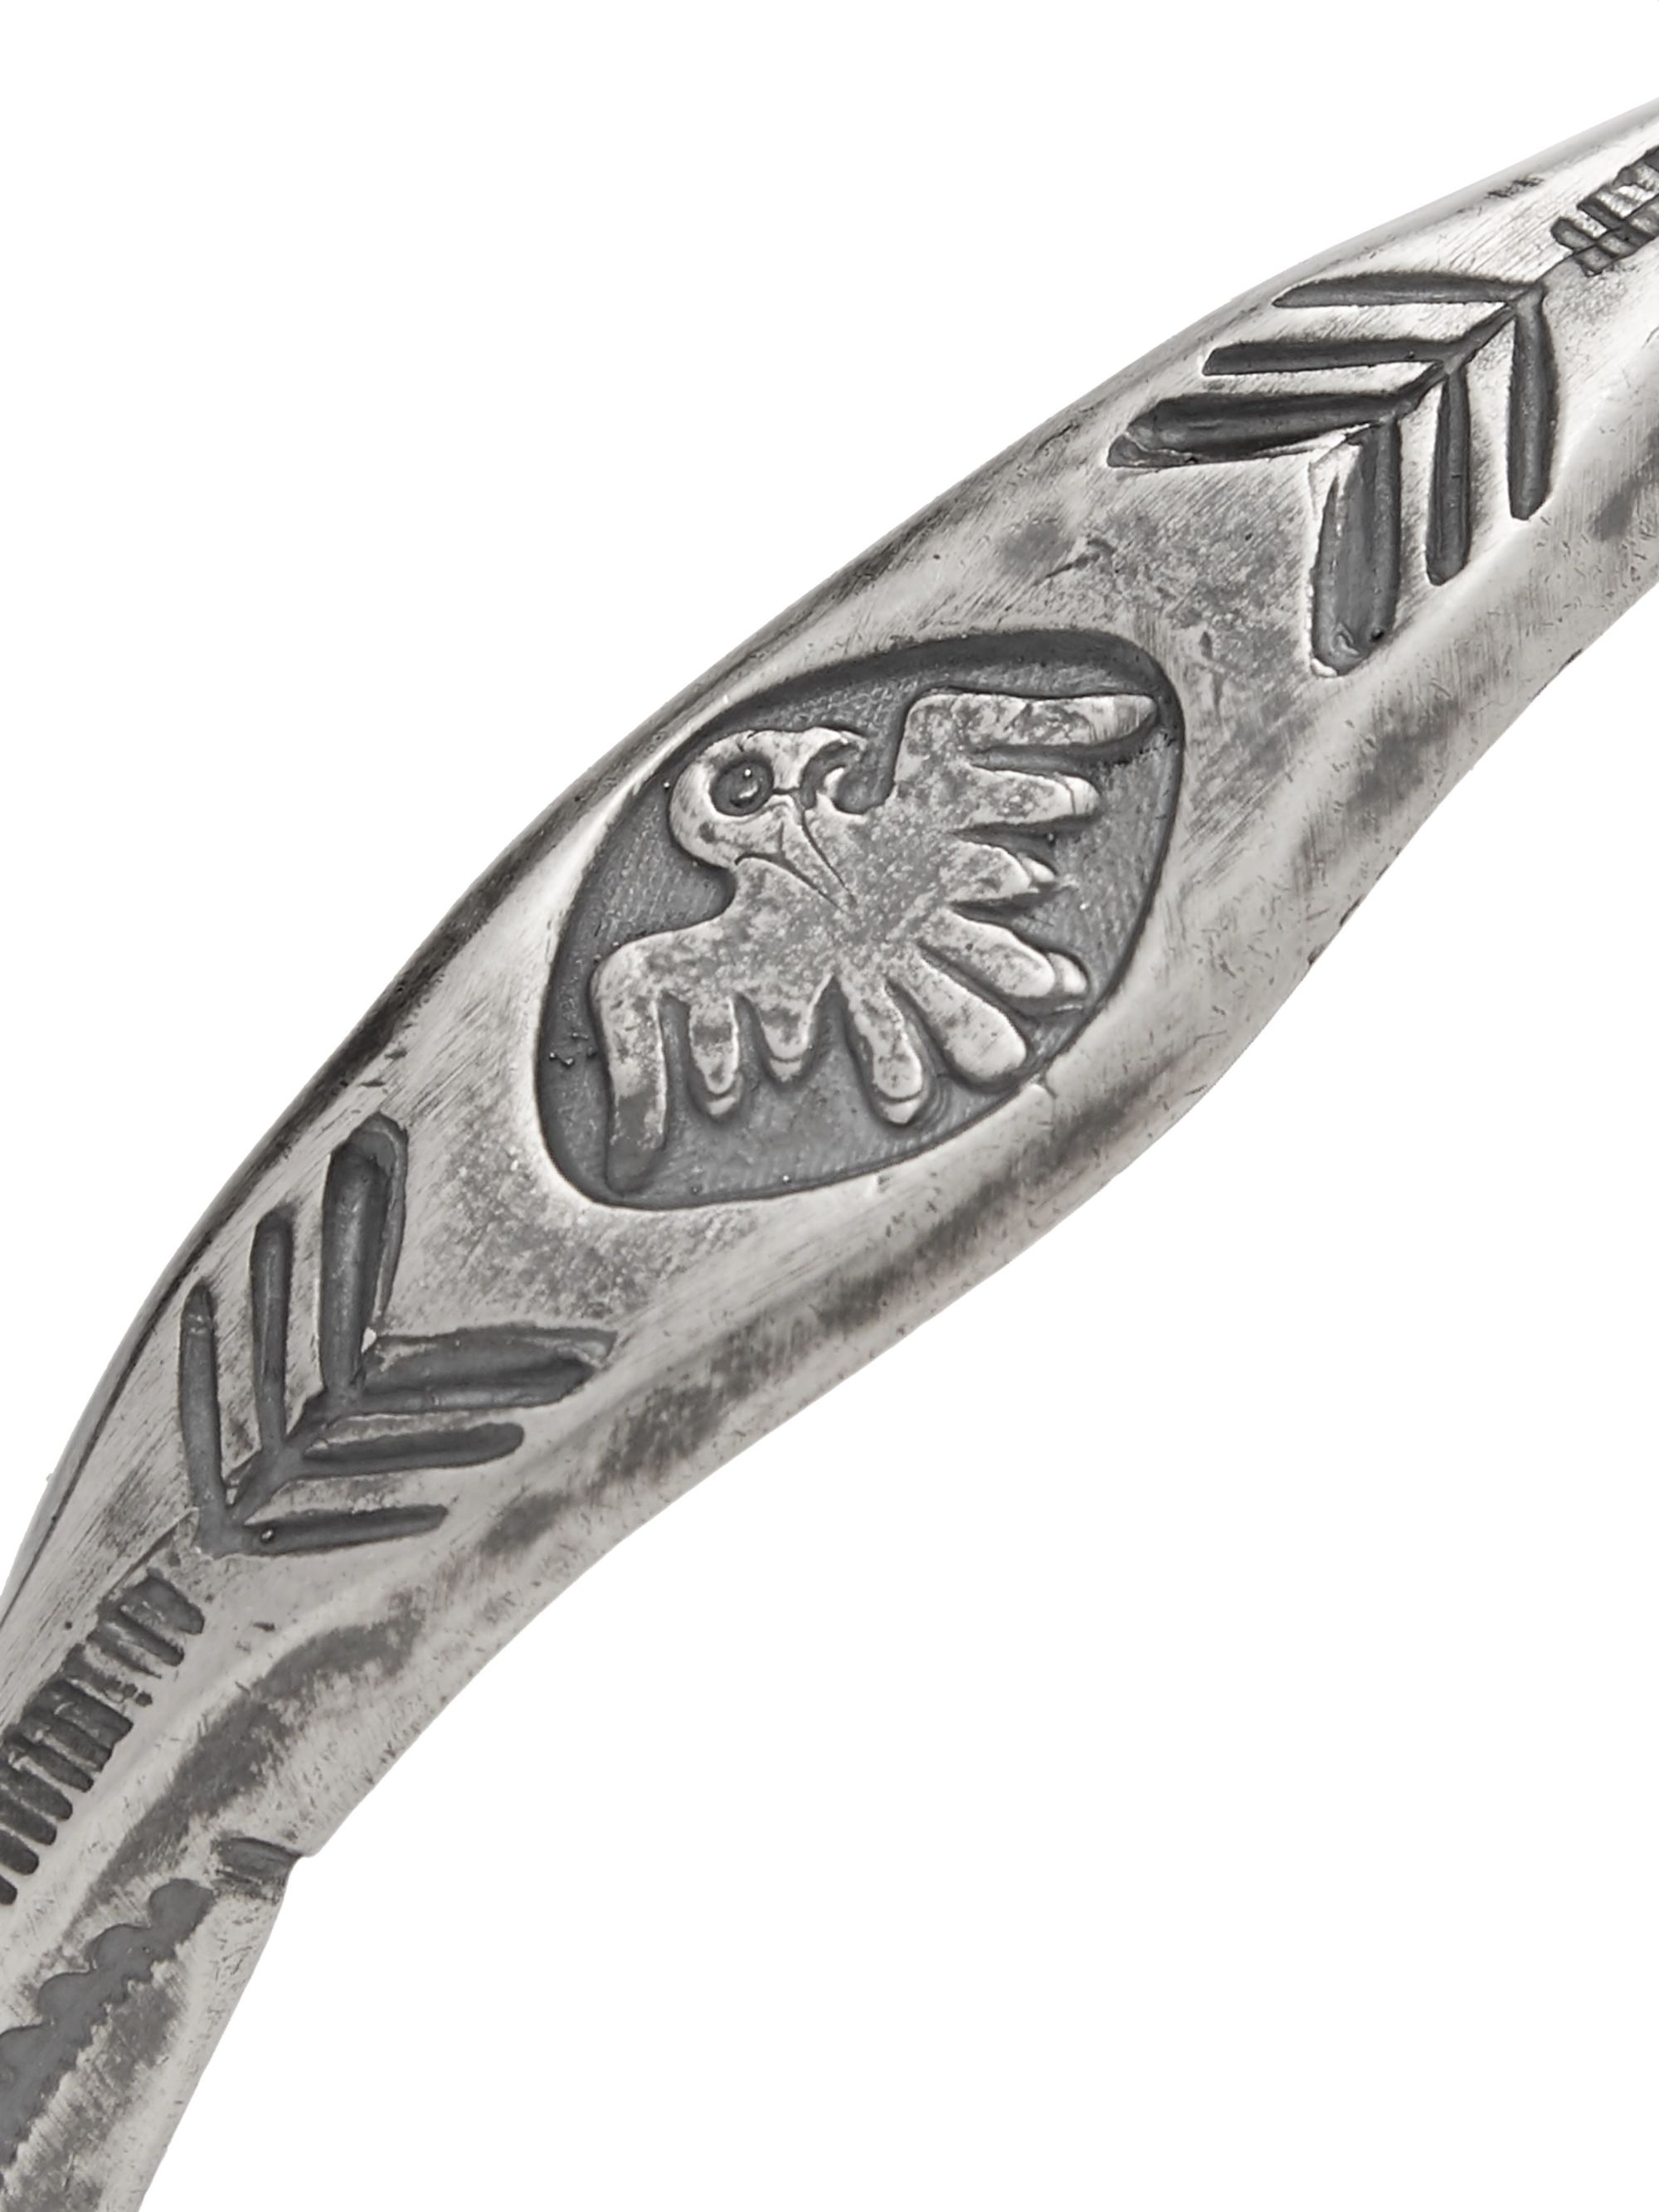 Peyote Bird Thunderbird Engraved Sterling Silver Cuff